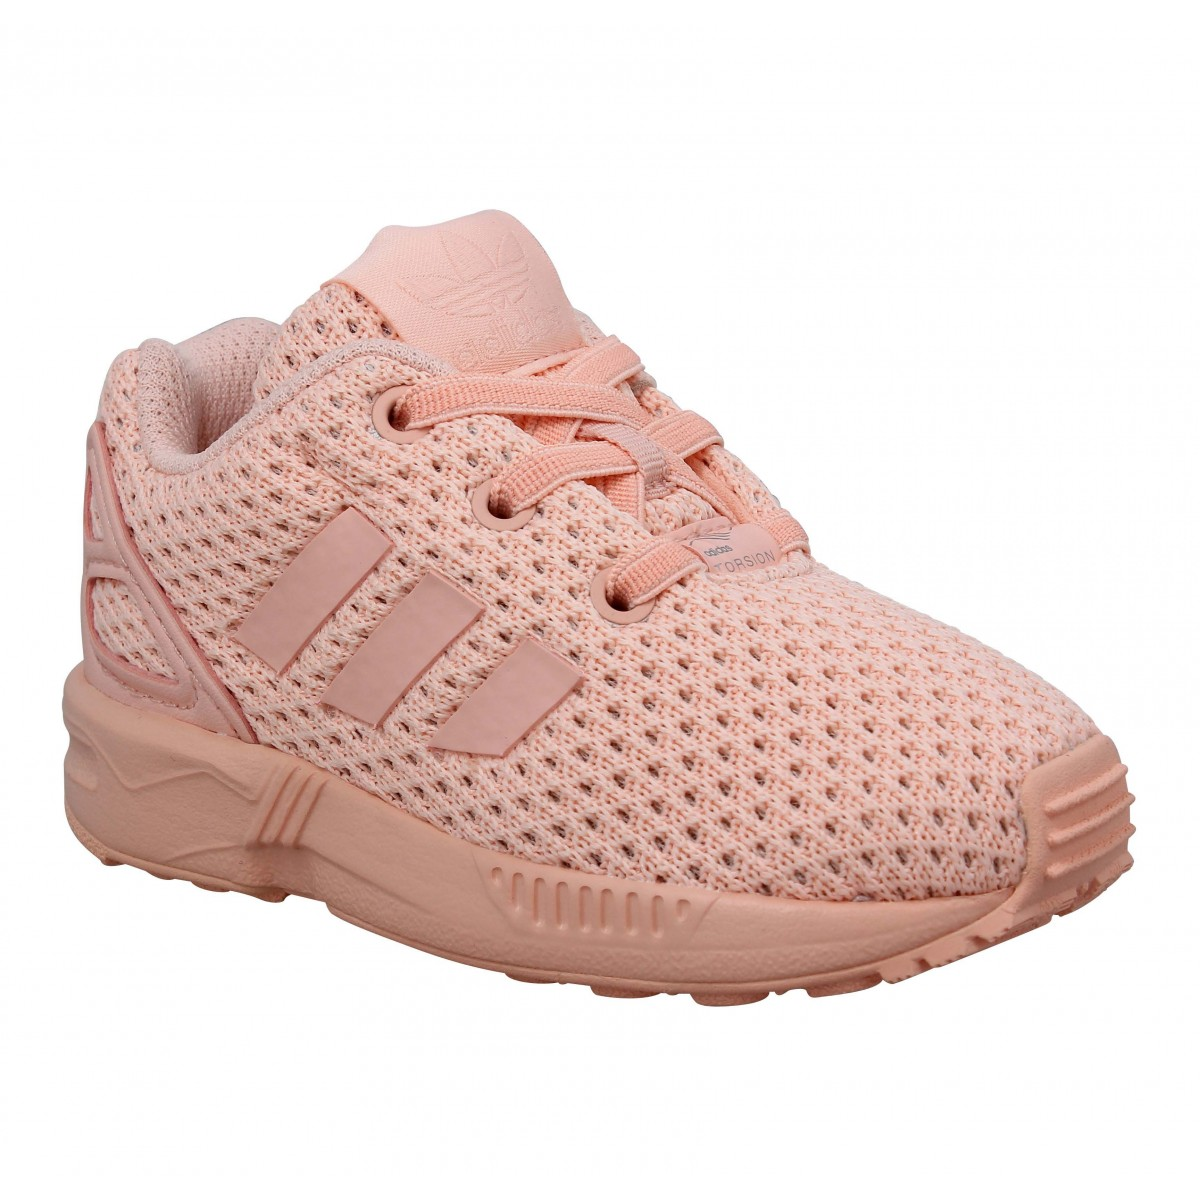 Adidas Marque Zx Flux Toile...